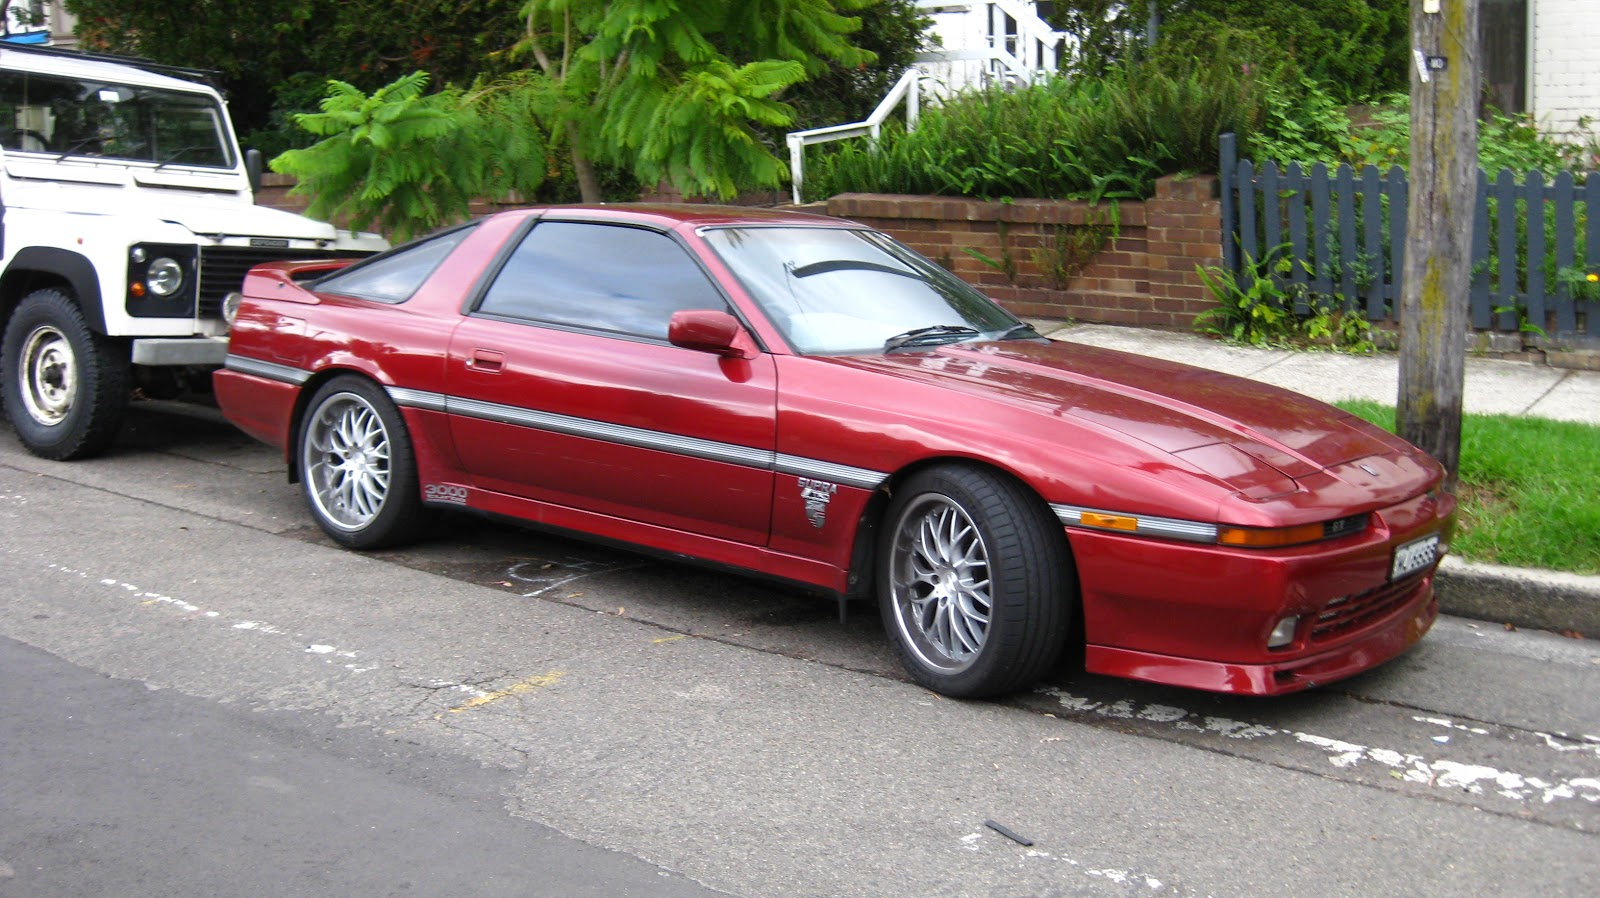 Aussie old parked cars 1990 toyota supra gt 30 turbo 1990 toyota supra gt 30 turbo sciox Gallery